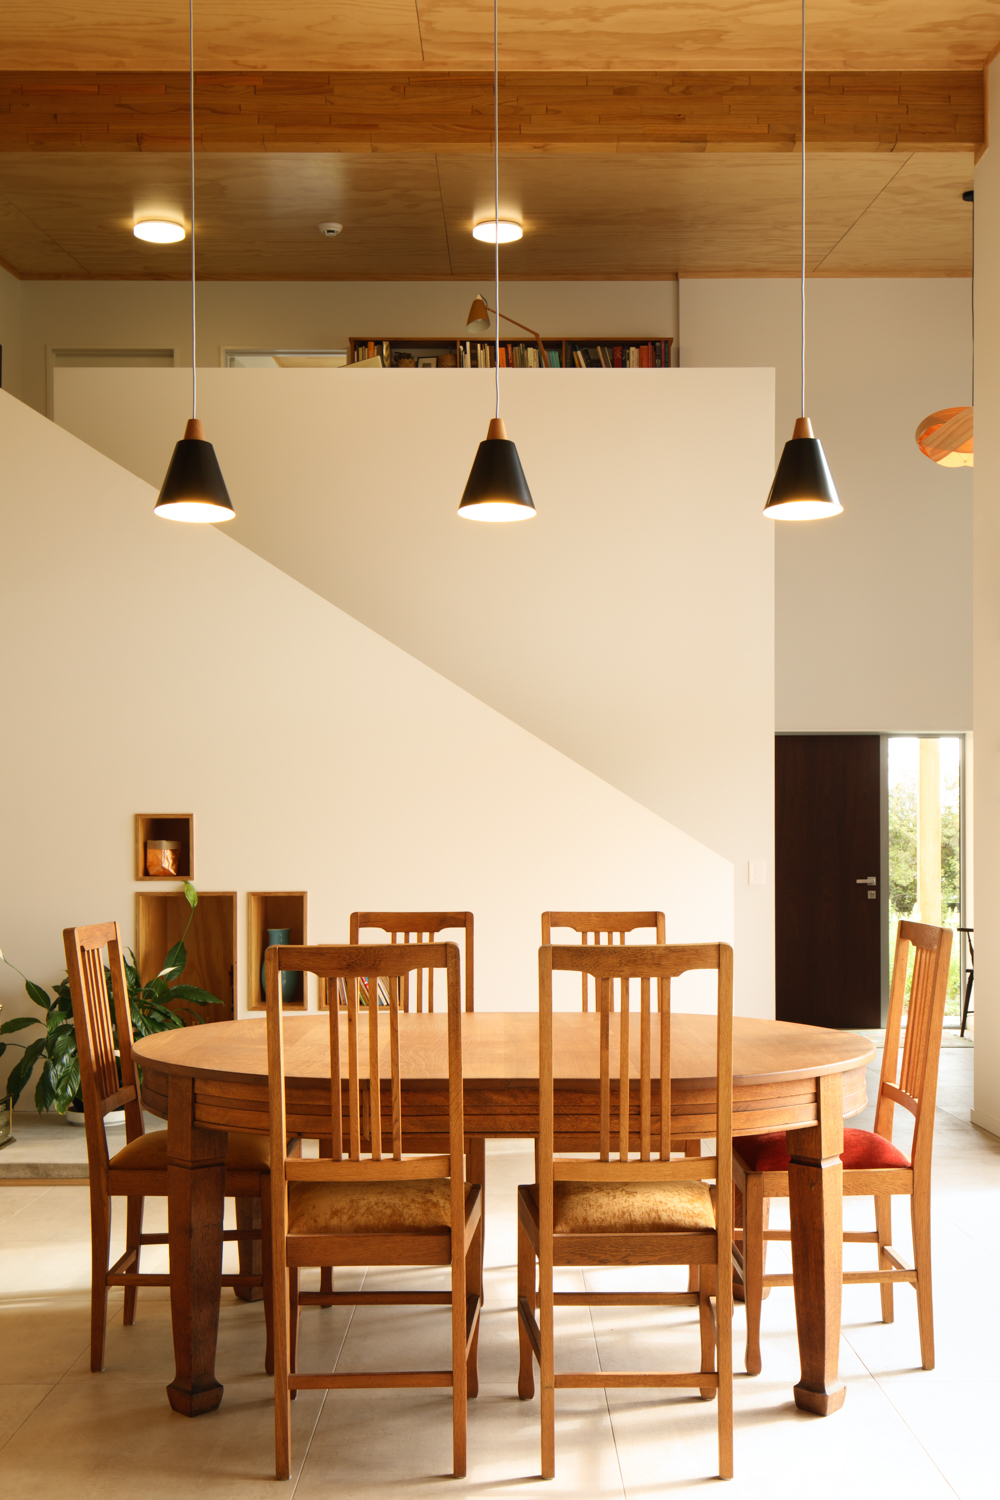 Townend-House-Interior-Dining.jpg